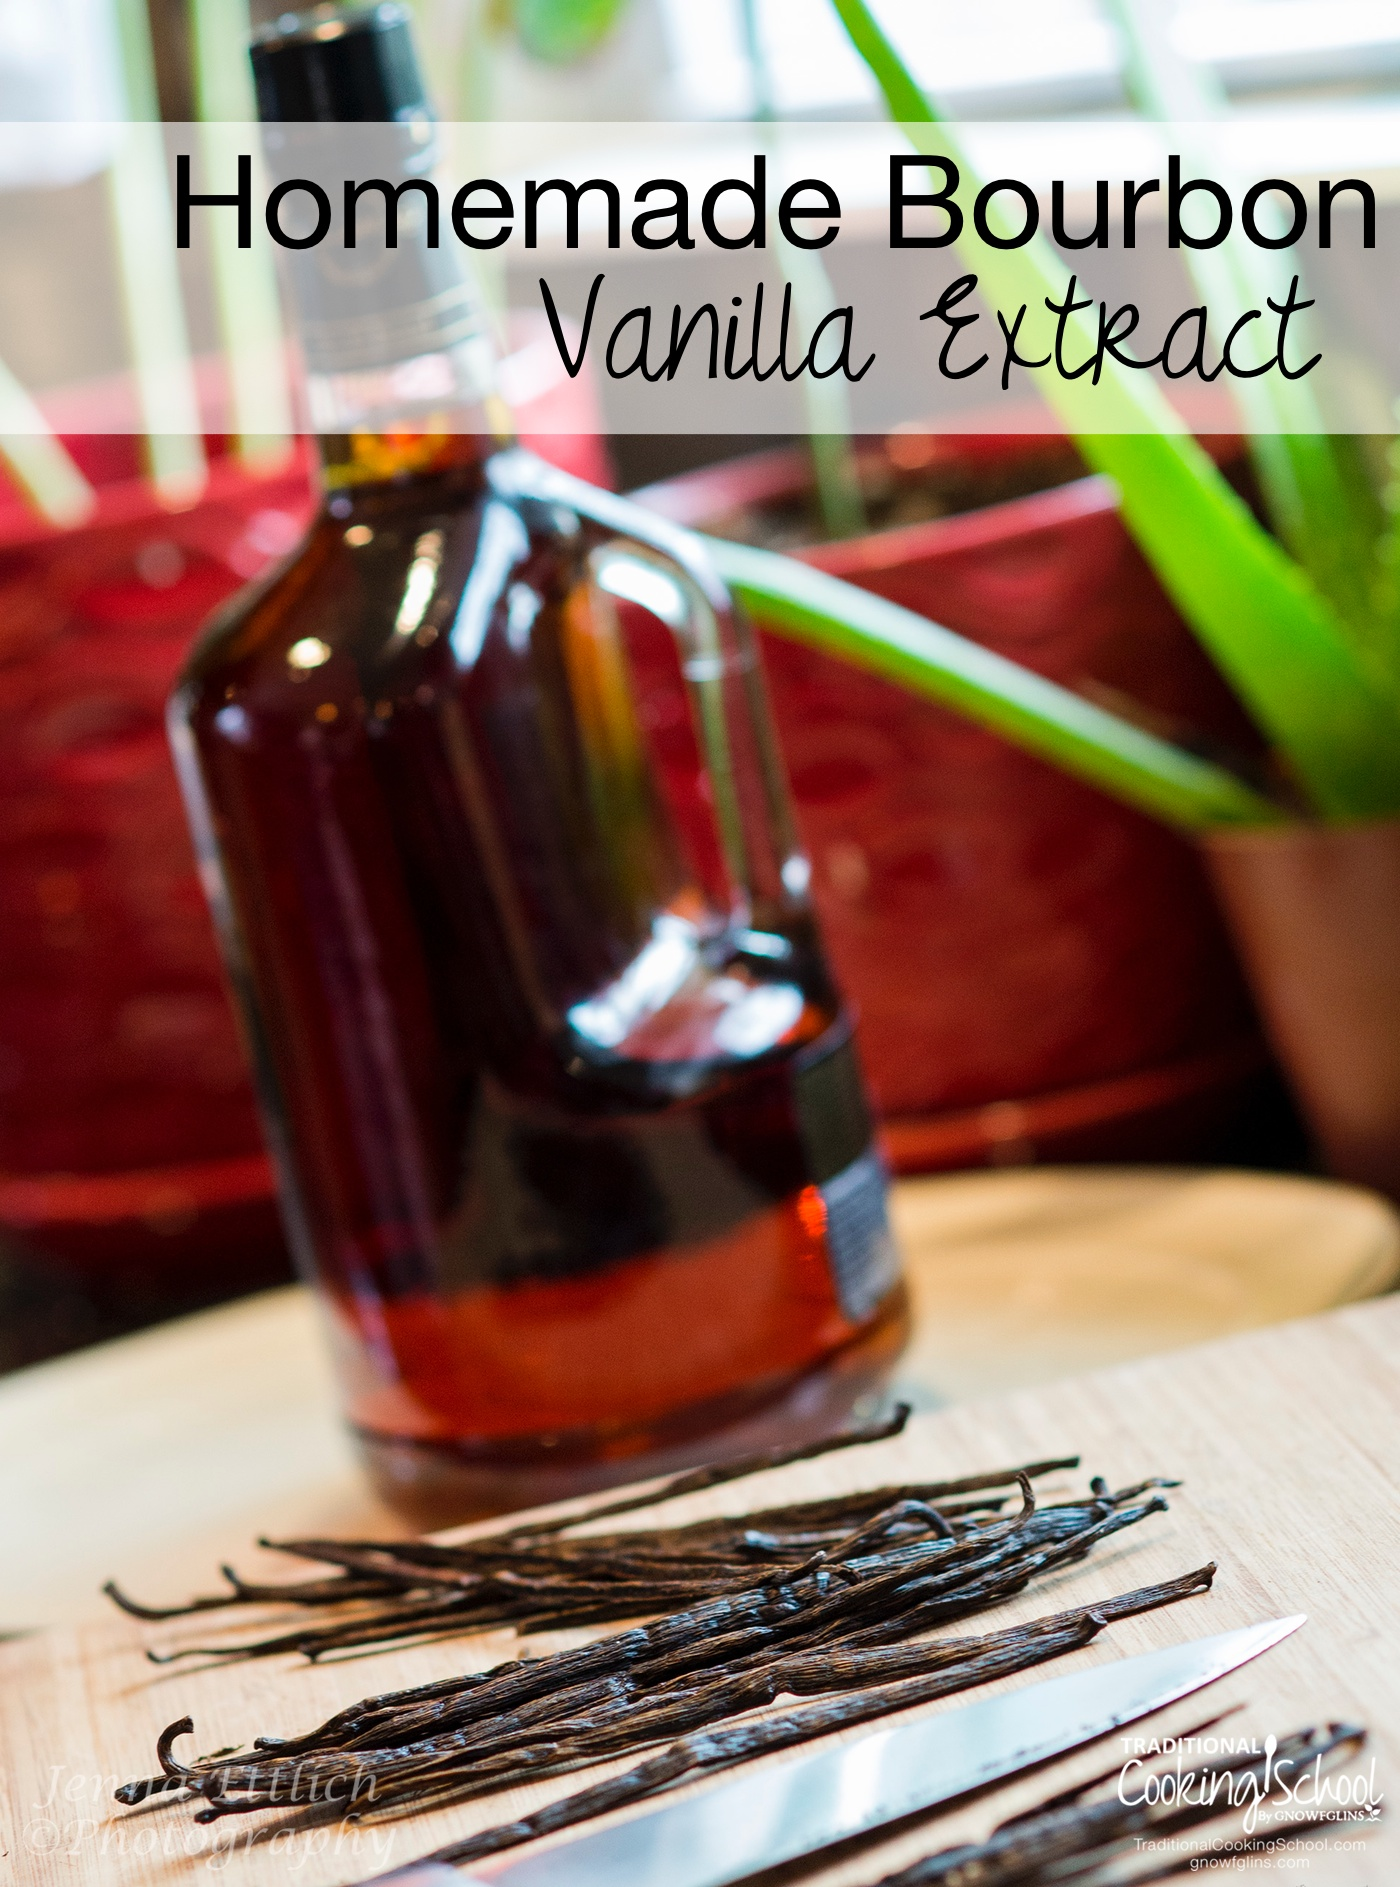 Homemade Bourbon Vanilla Extract | One of the best and most simple things I've ever done is make my own vanilla extract. And bourbon vanilla, at that. Our homemade ice cream is 500 times better for it, plus everything else we make! | TraditionalCookingSchool.com